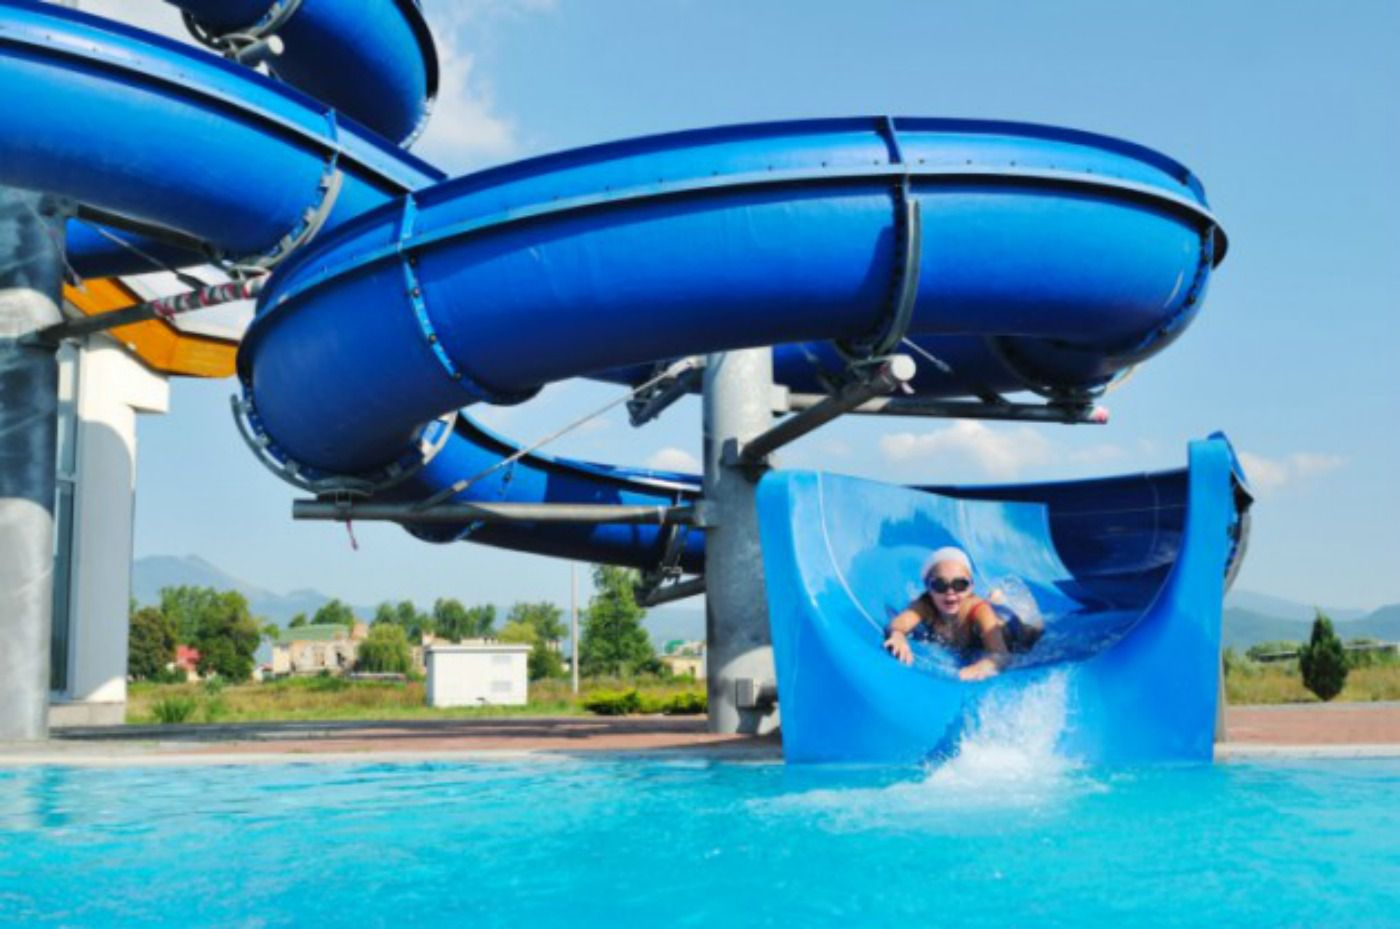 Waterslide with child sliding down